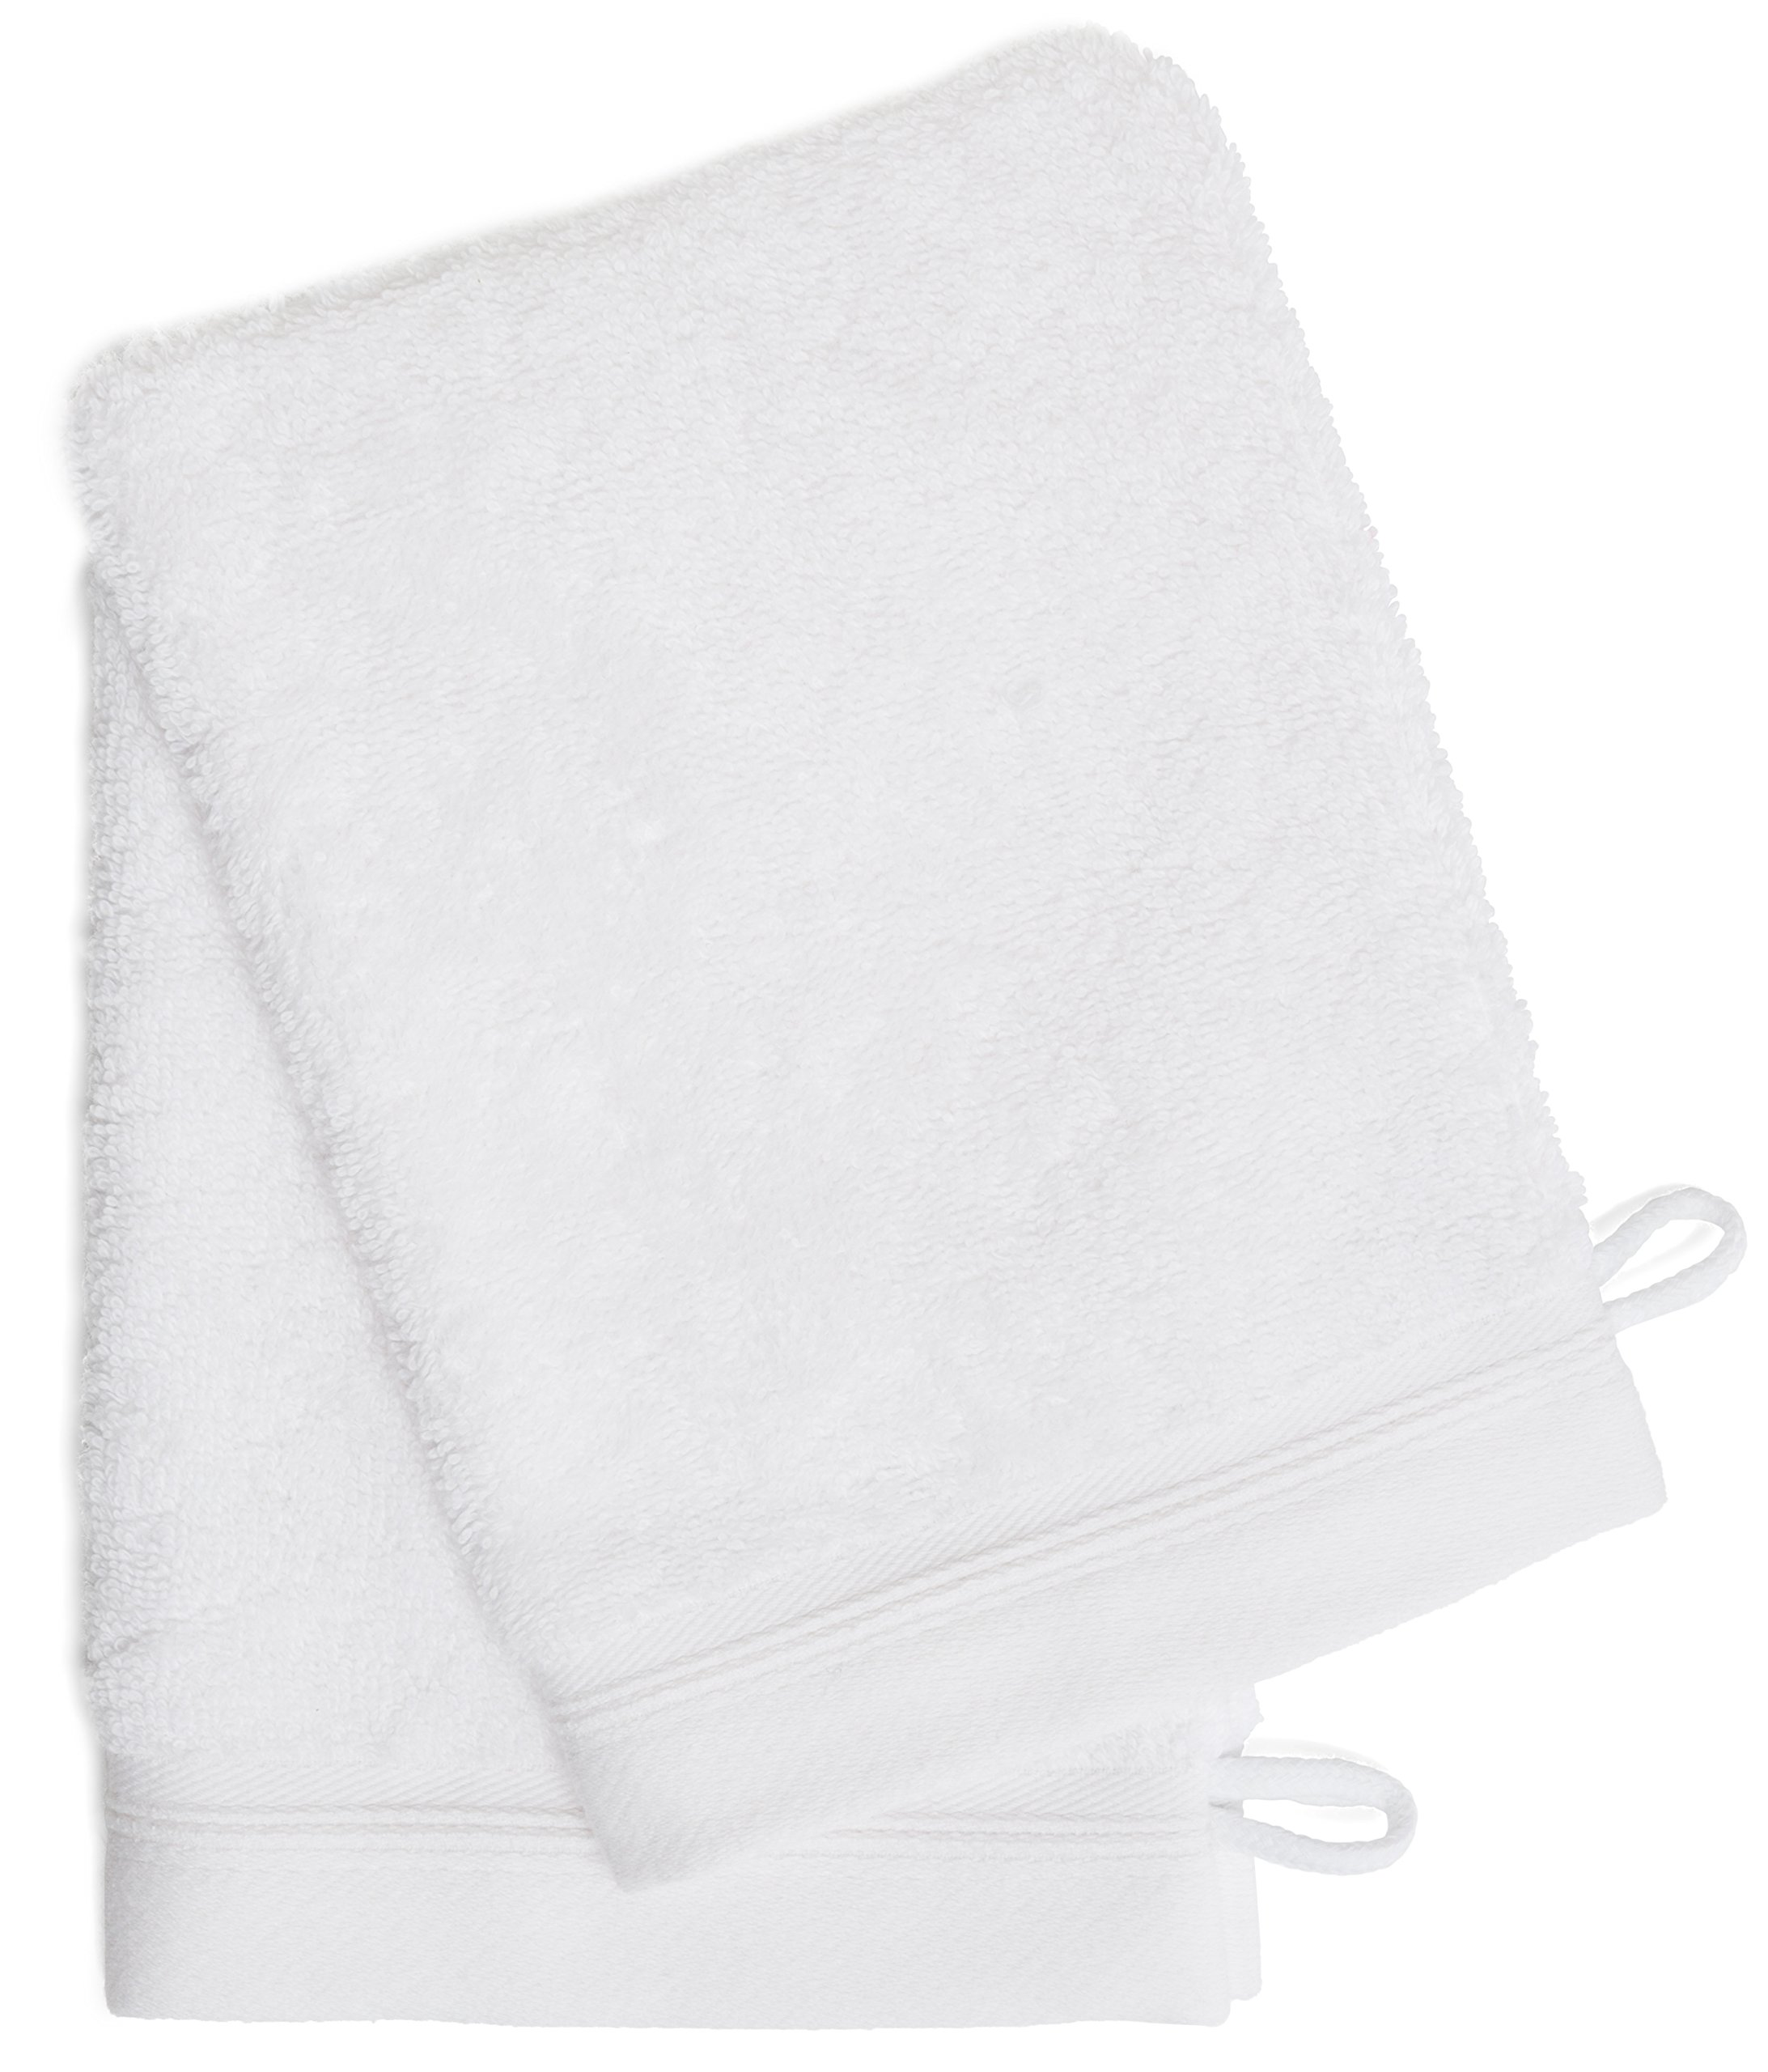 France Luxe Body French-Style Bath Mitt 2-Pack - White/White by France Luxe